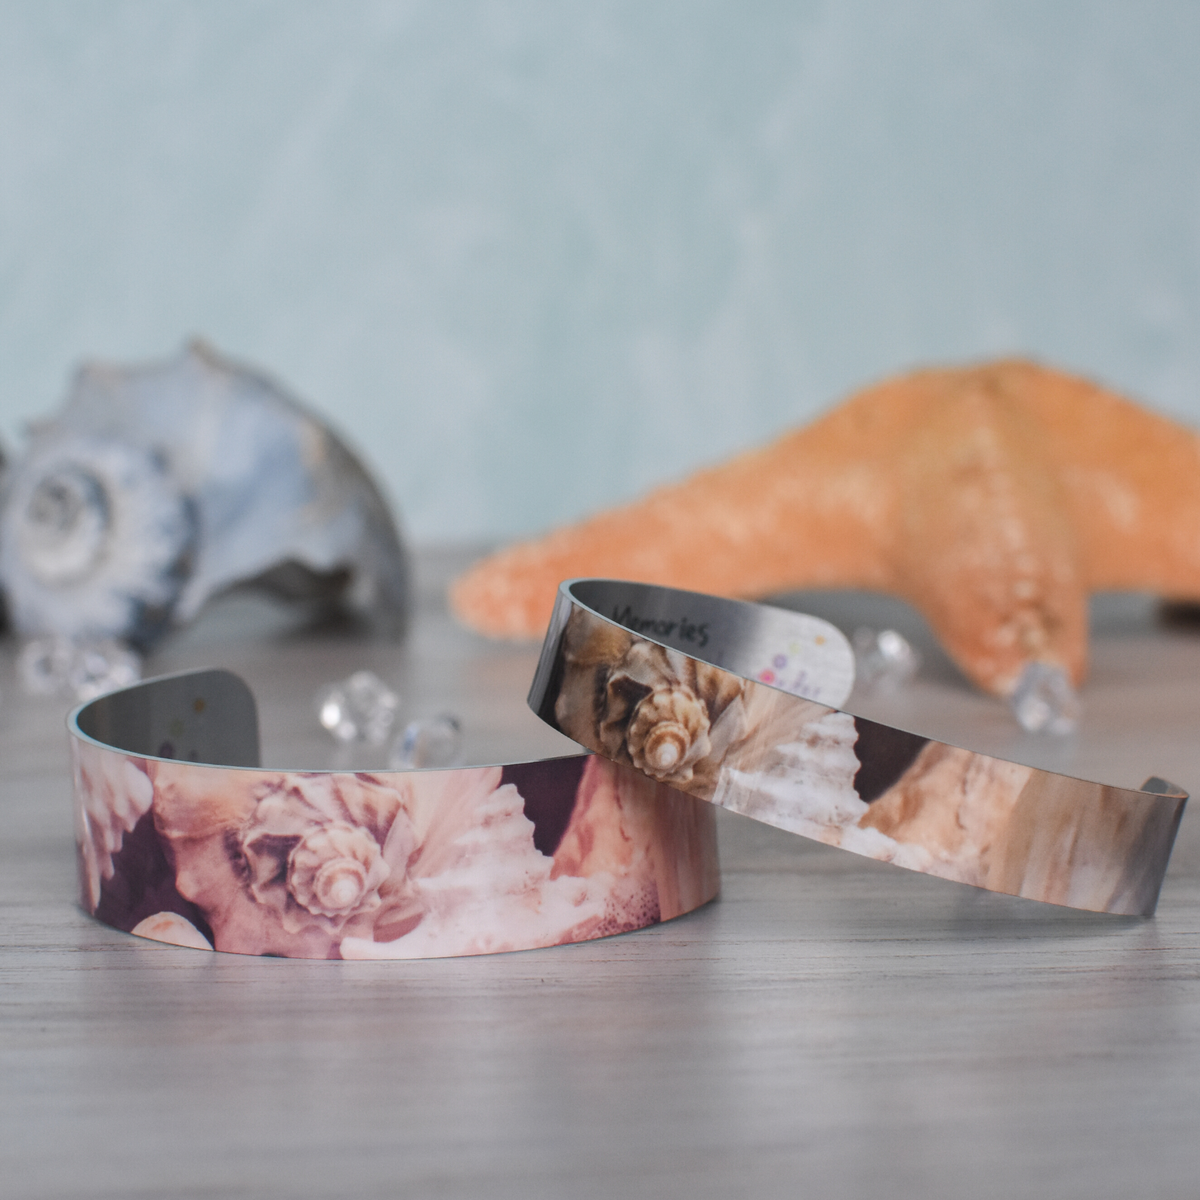 Super Narrow & Narrow conch shell bracelets | Wear the Wonder